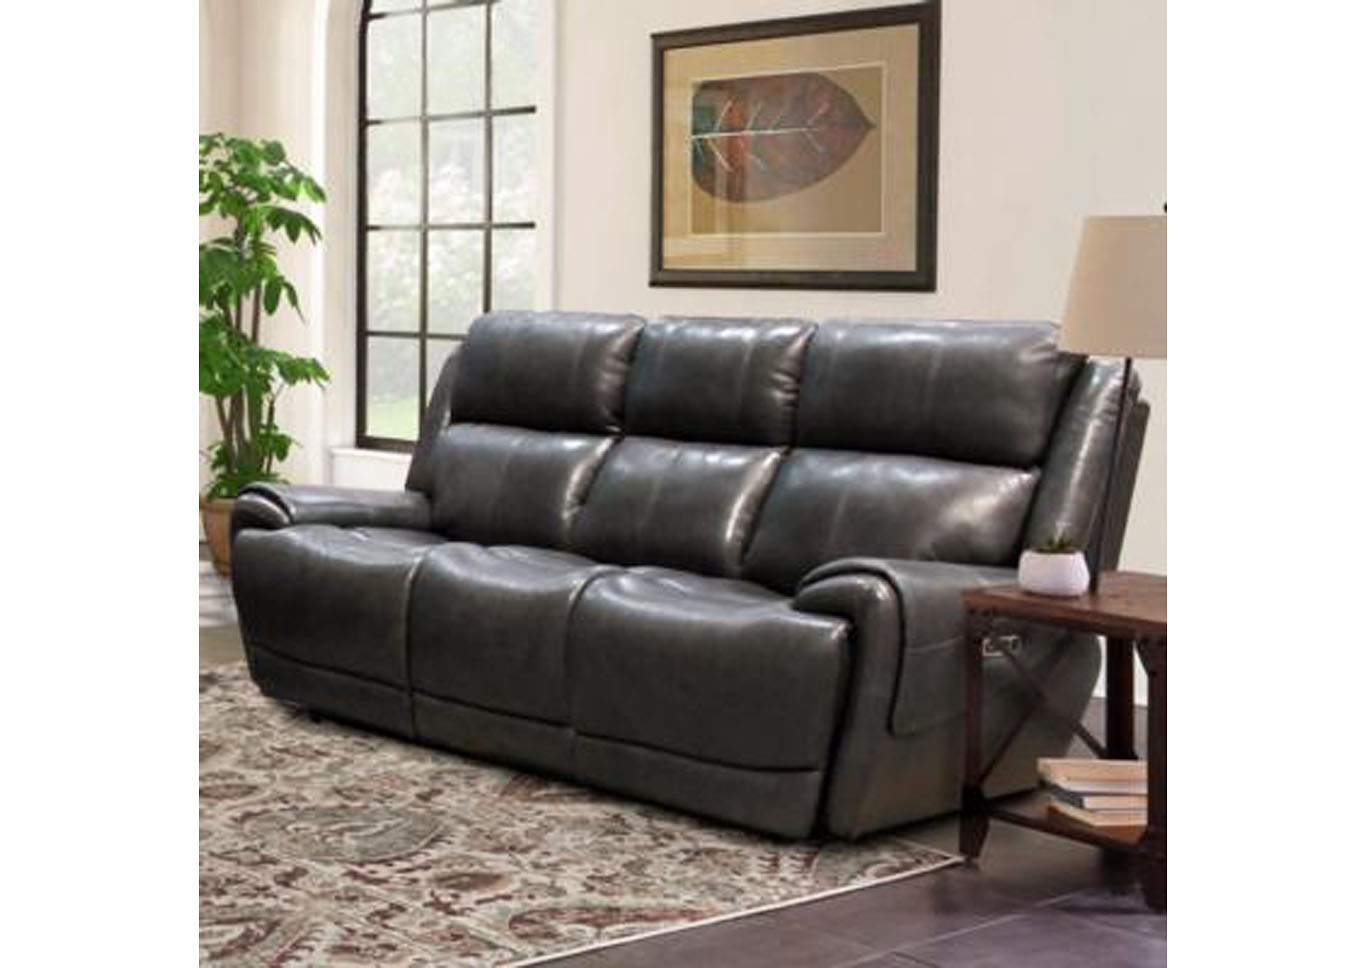 Spencer Top Grain Leather Power Dual Reclining Sofa with Power Headrest and USB Charging - Gray,Instore